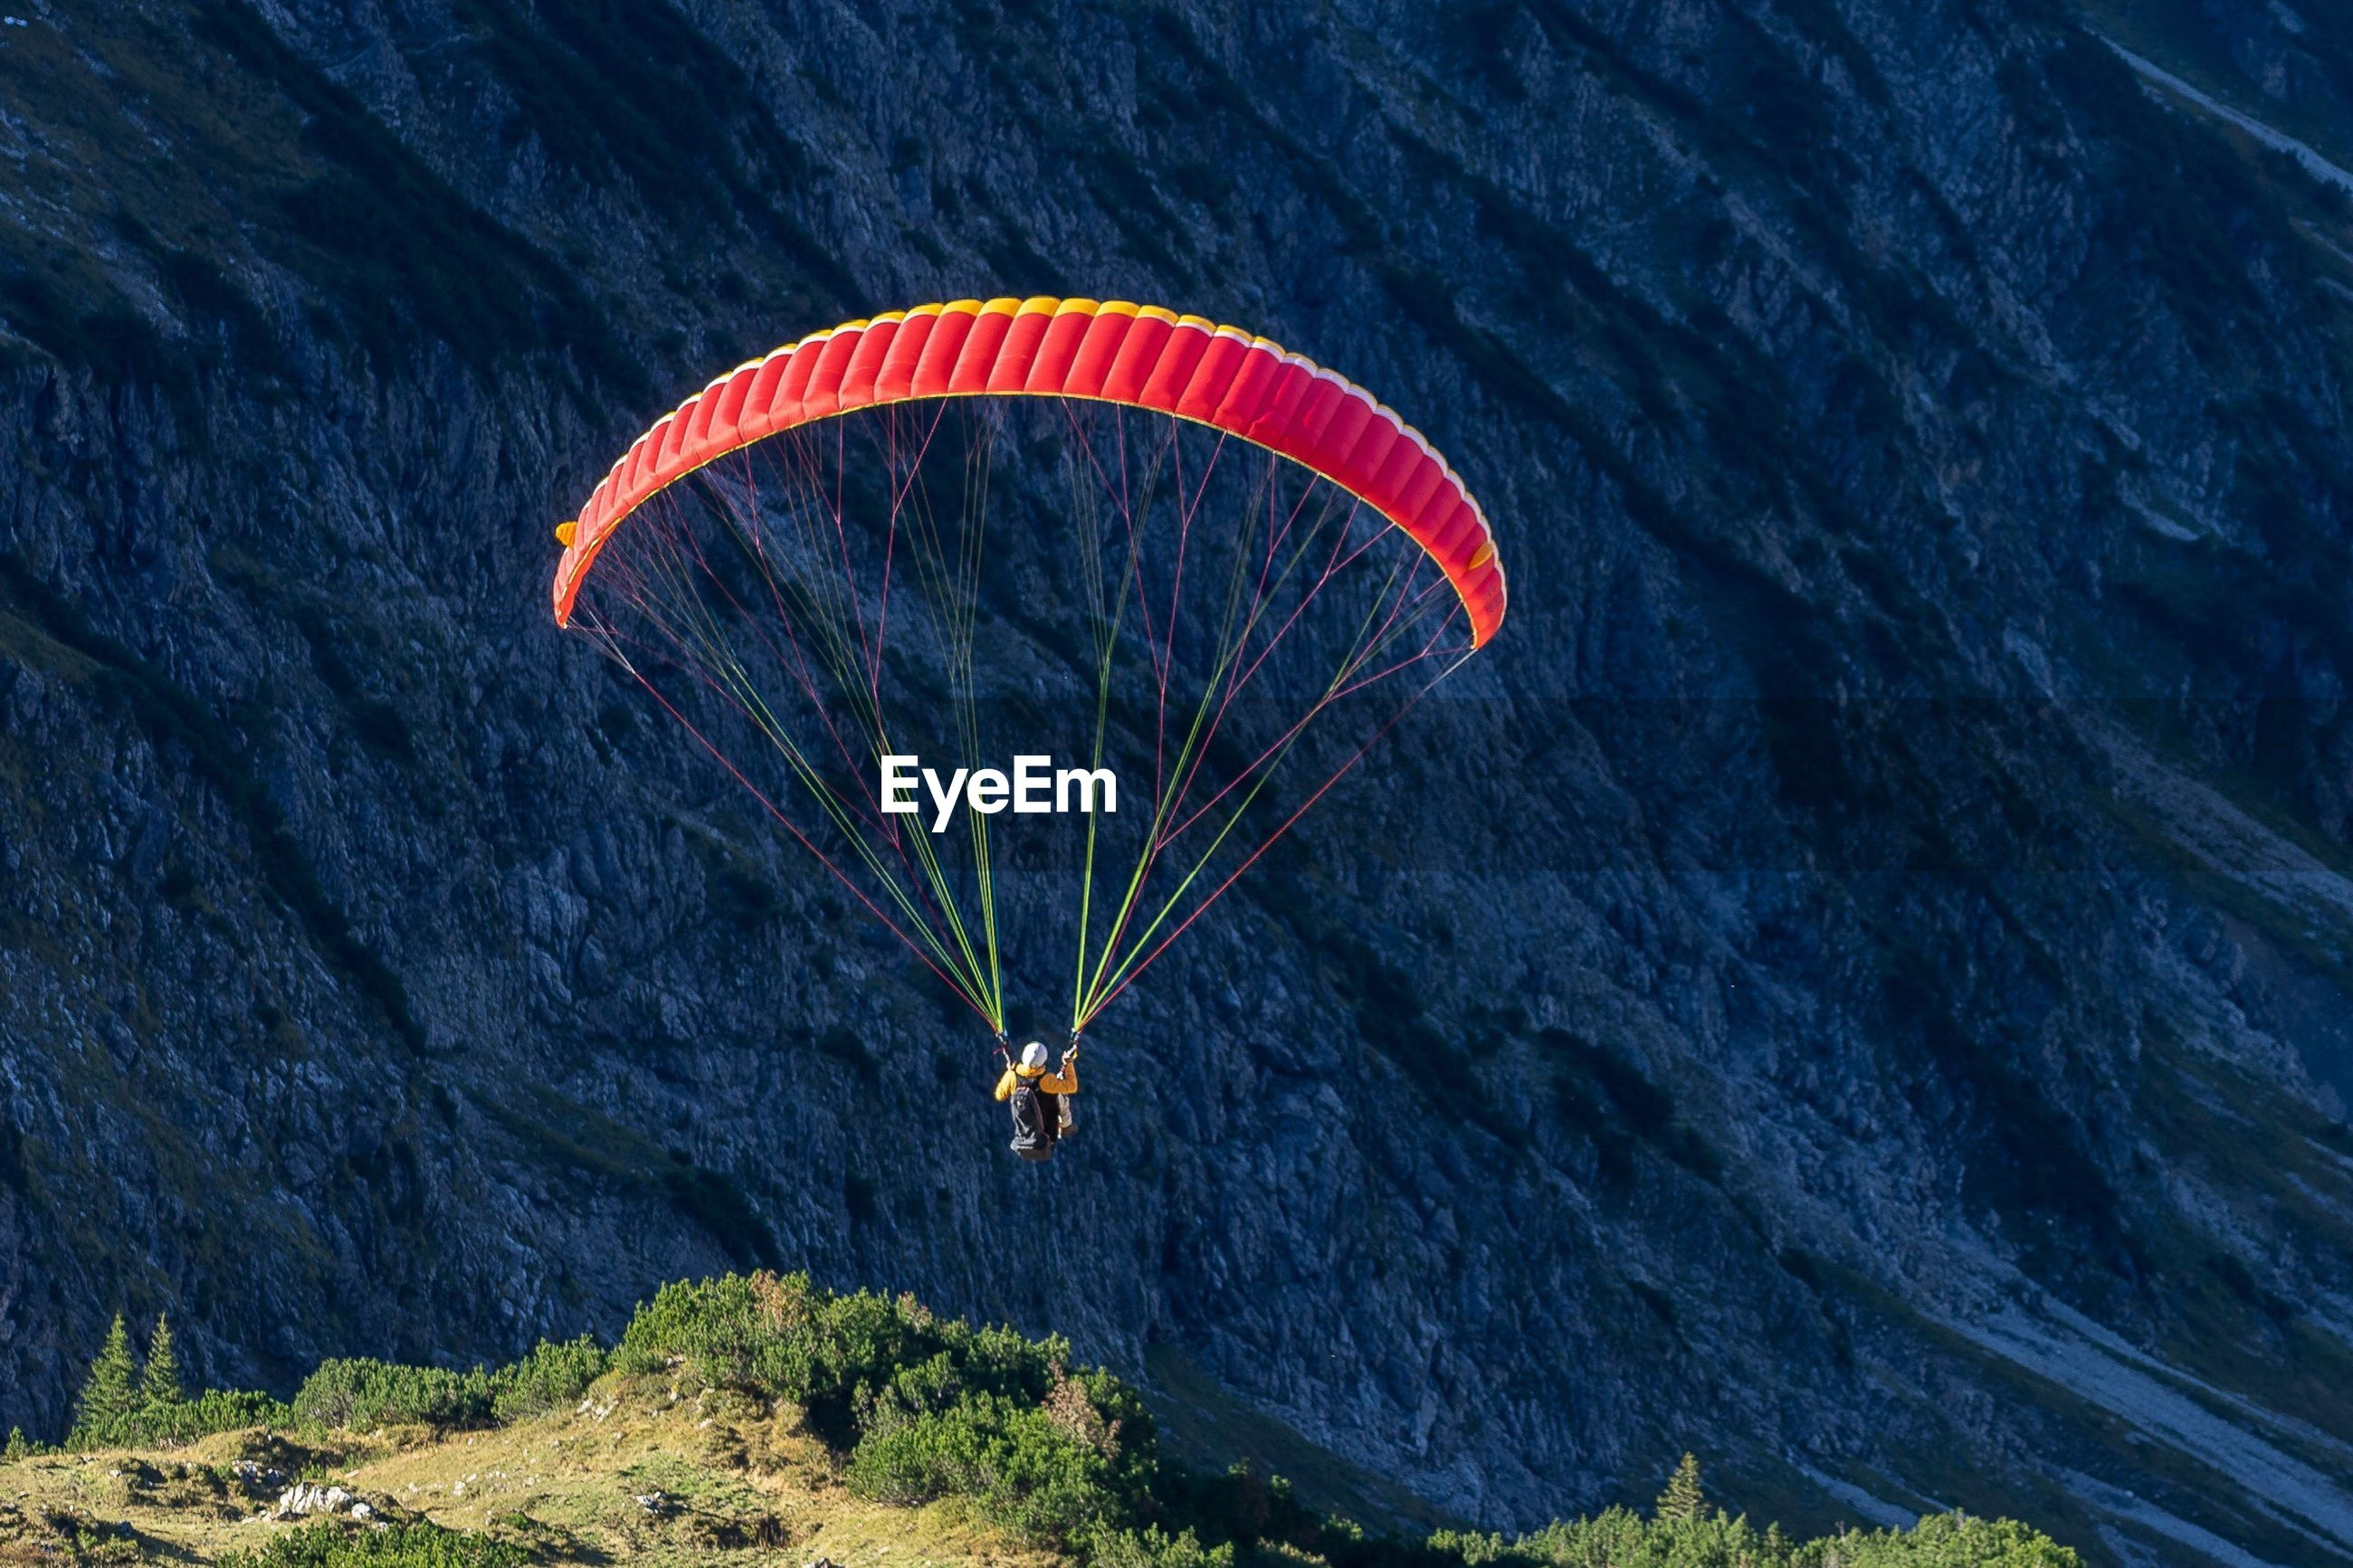 Person paragliding against mountain